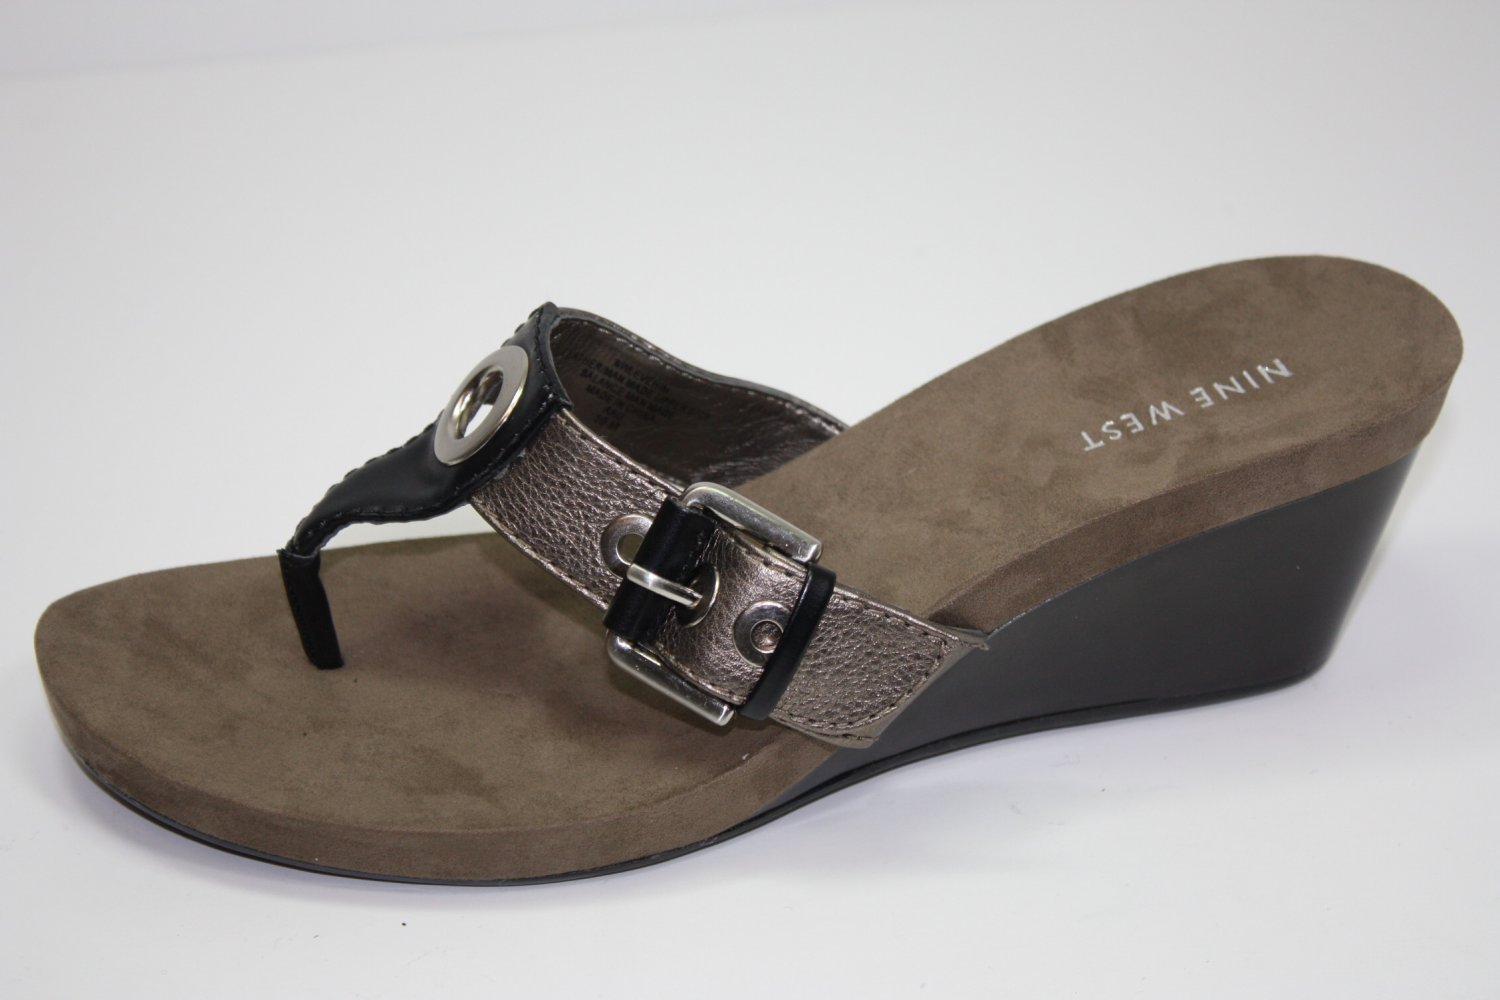 Nine West Levehim Sandals Bronze Shoes US 6 $69